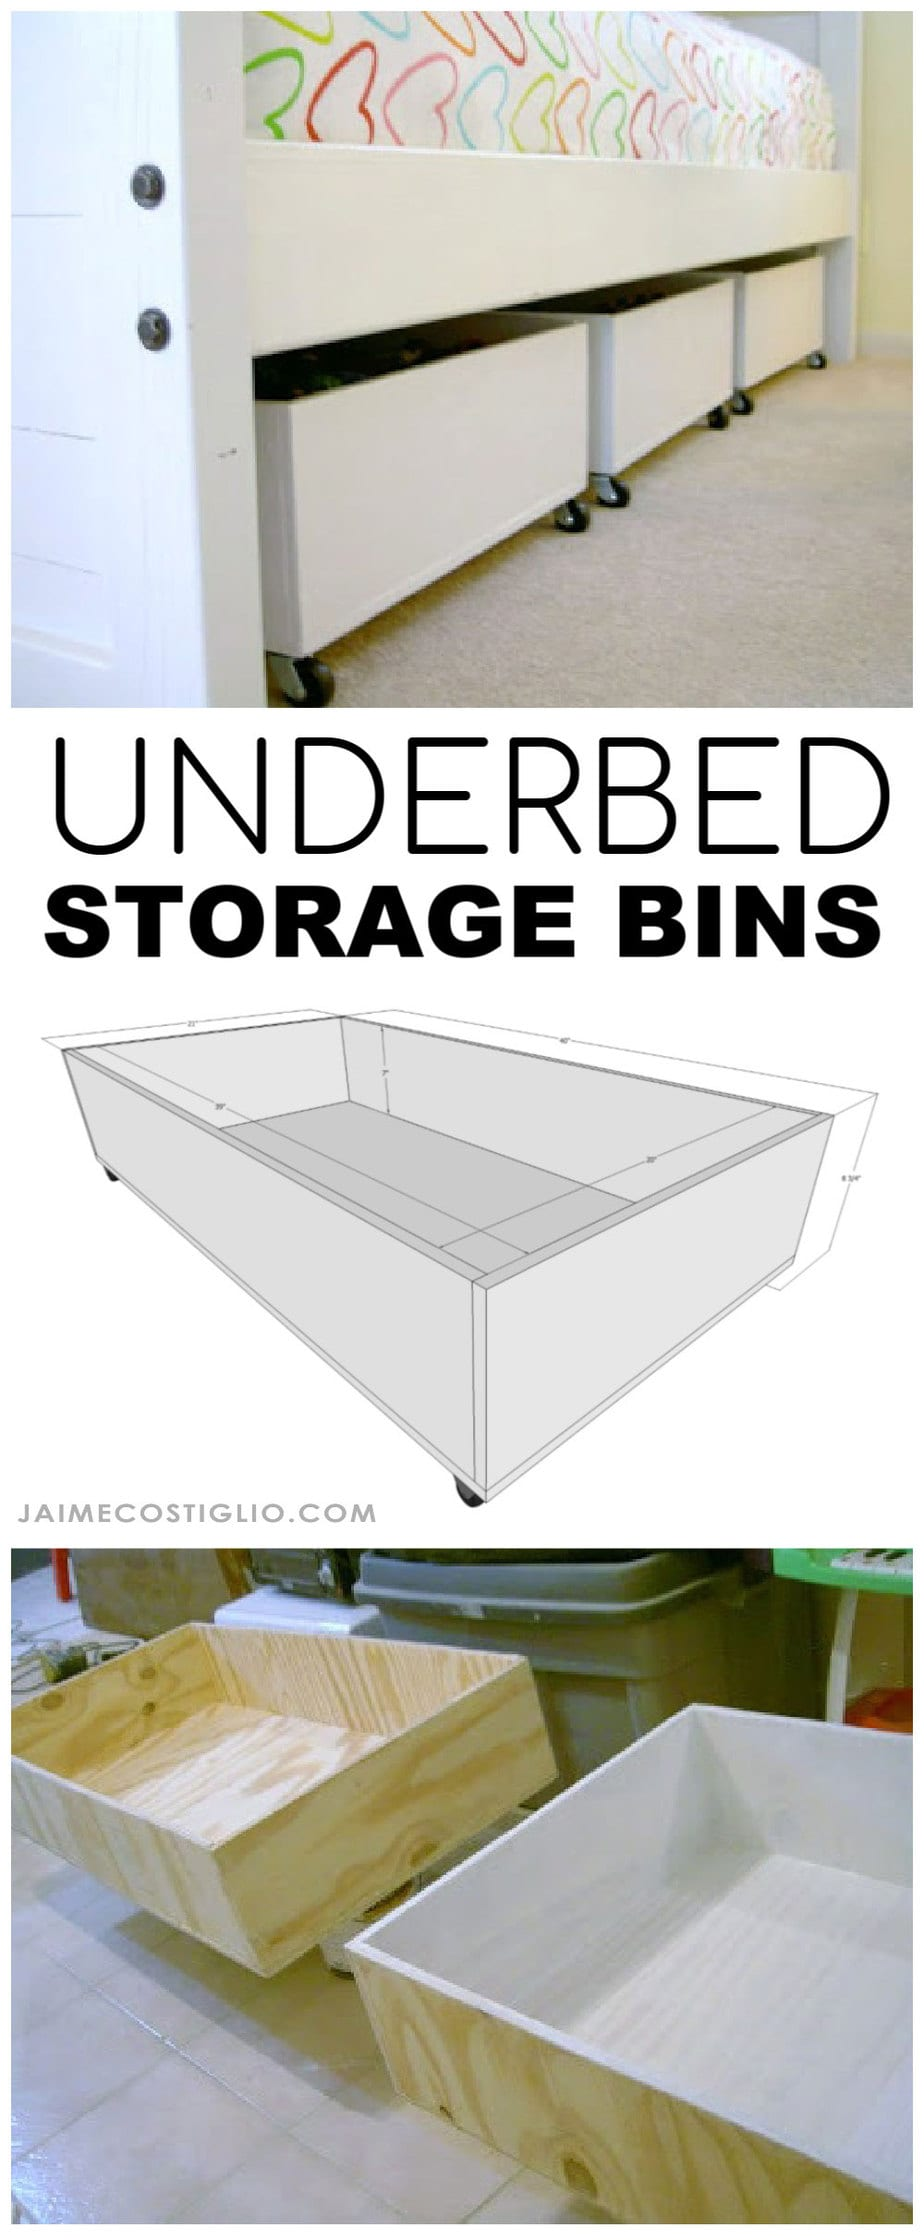 Diy underbed storage bins